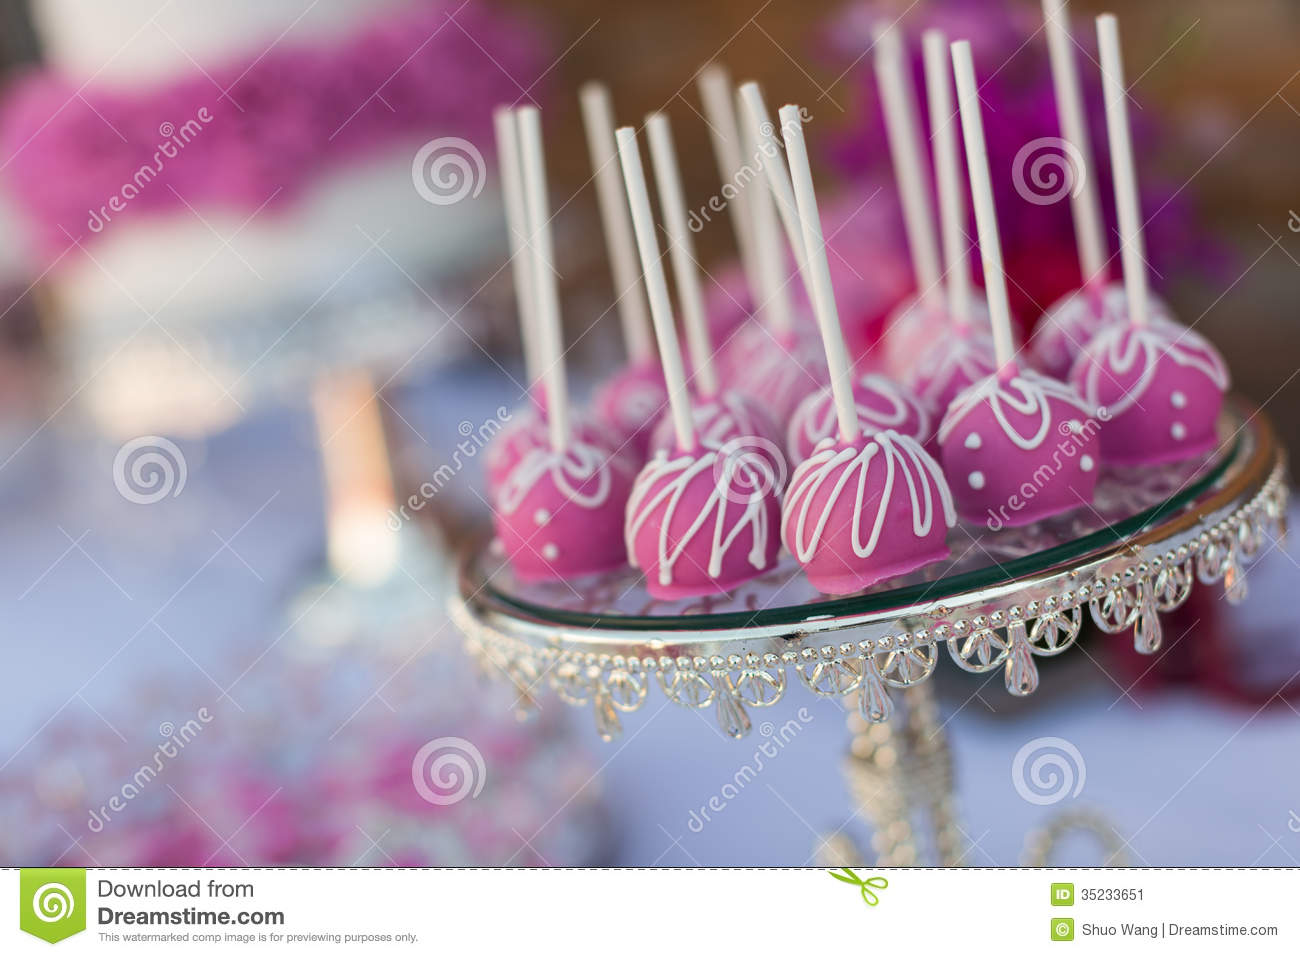 cake pops and cupcakes stock image  image of cupcakes